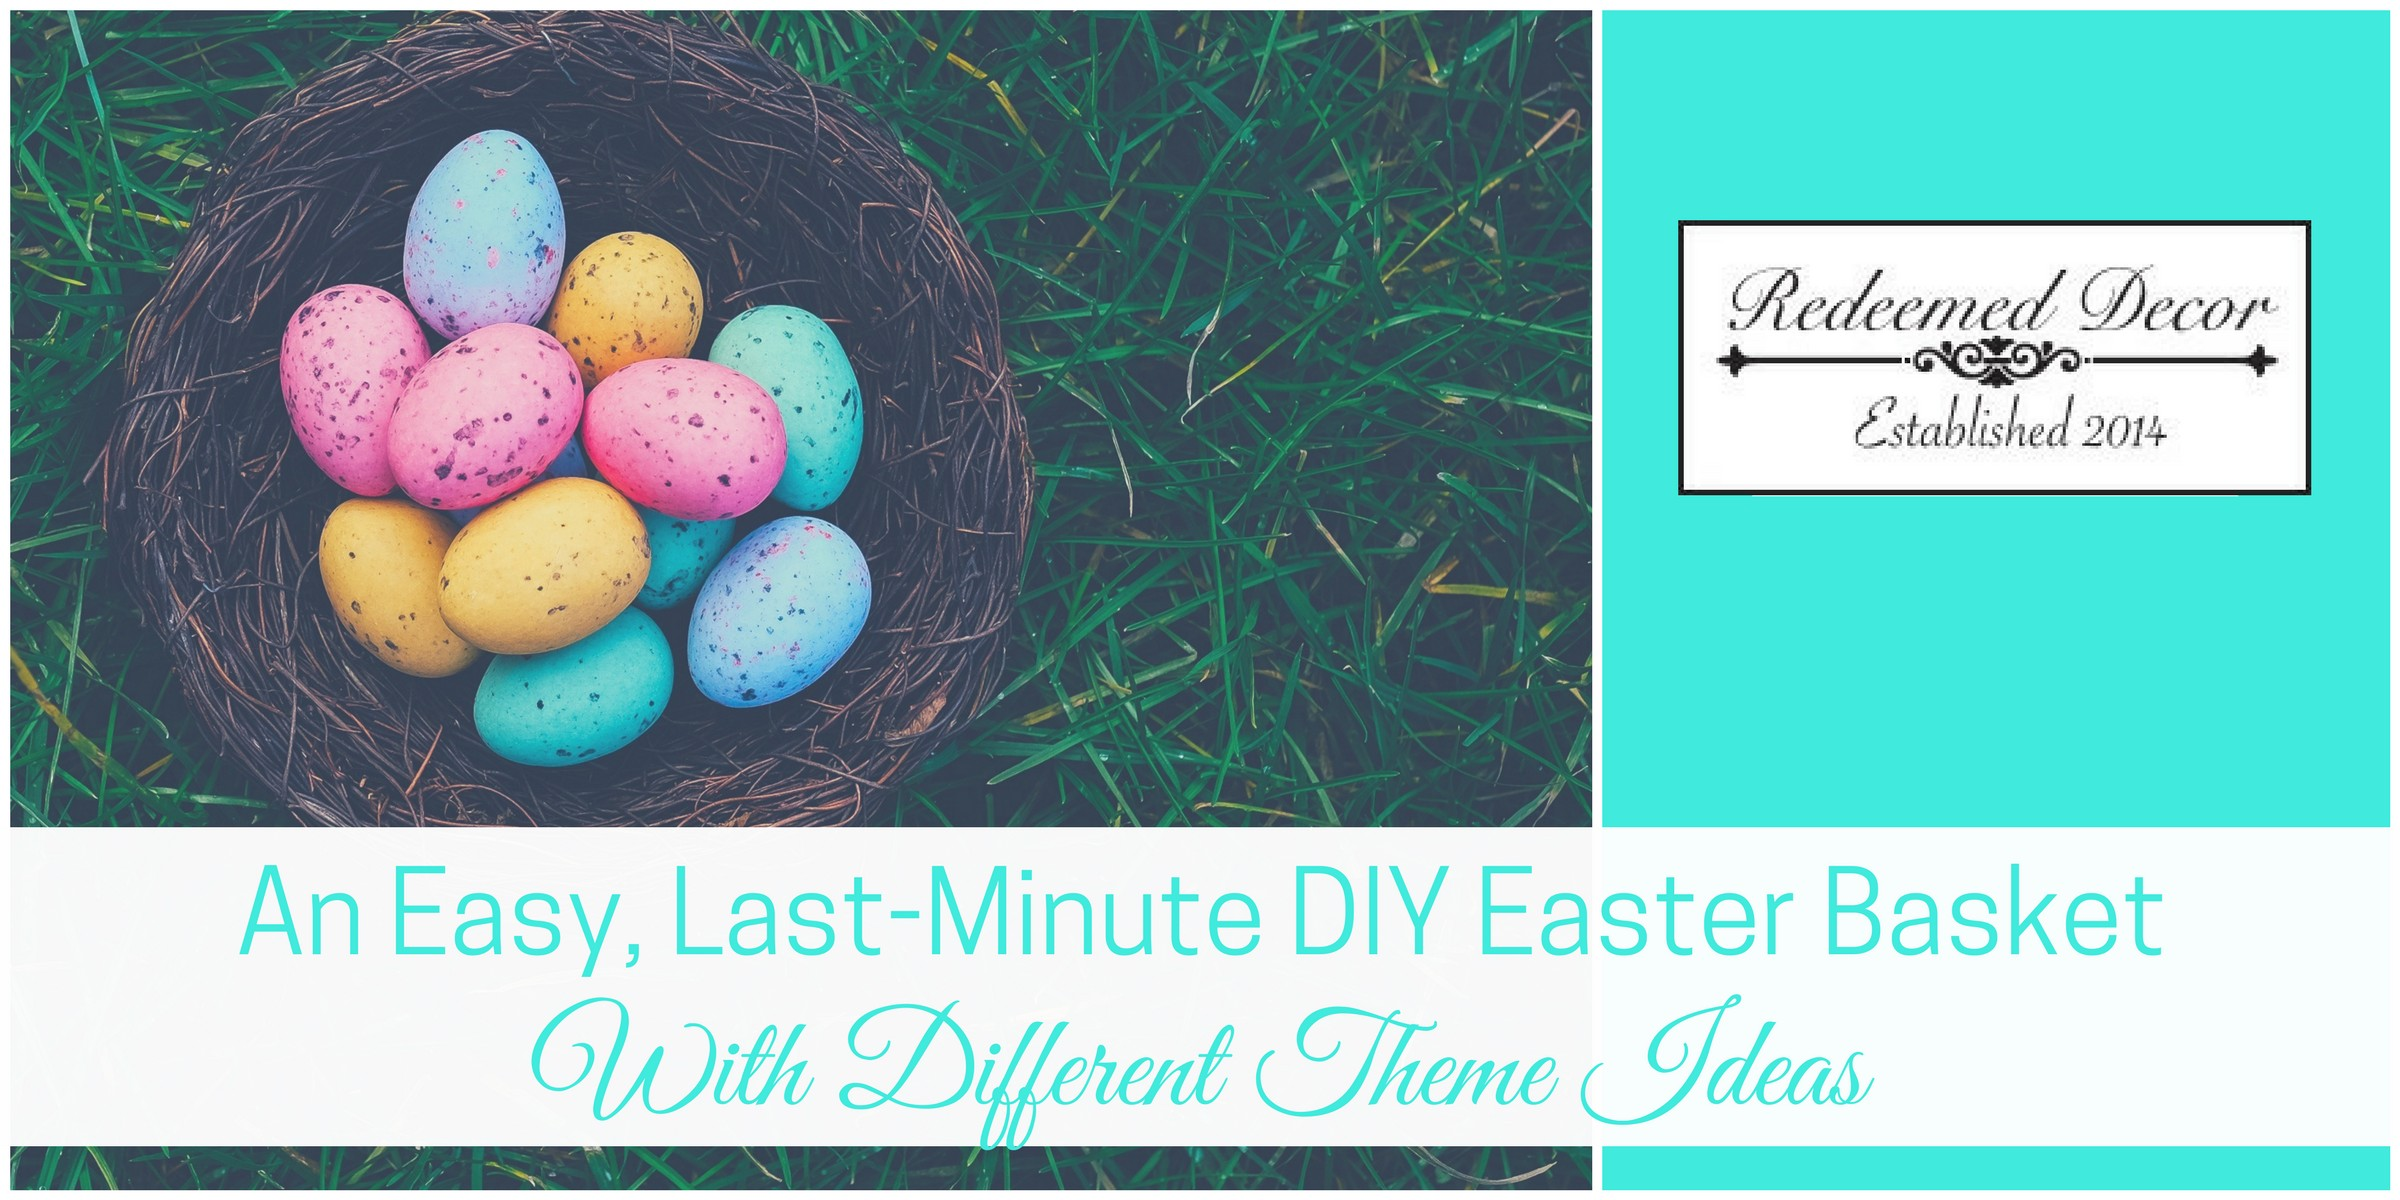 "Featured Image for ""An Easy, Last-Minute DIY Easter Basket With Different Theme Ideas"" blog post"